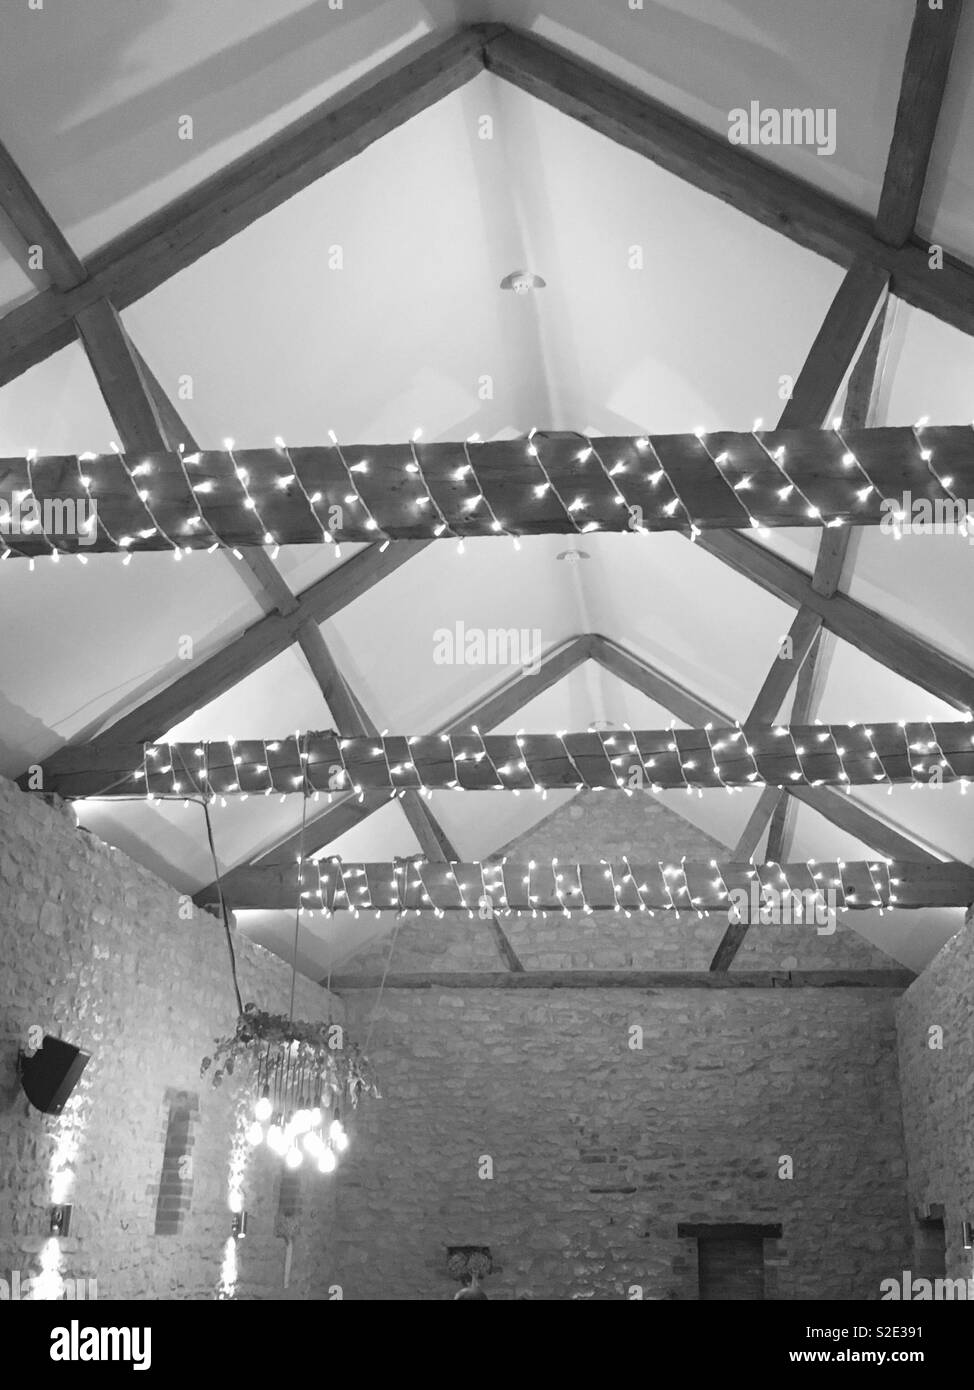 Image of: A Vaulted Ceiling In A British Farm House With Fairy Lights Across The Wooden Beams In Monochrome Stock Photo Alamy